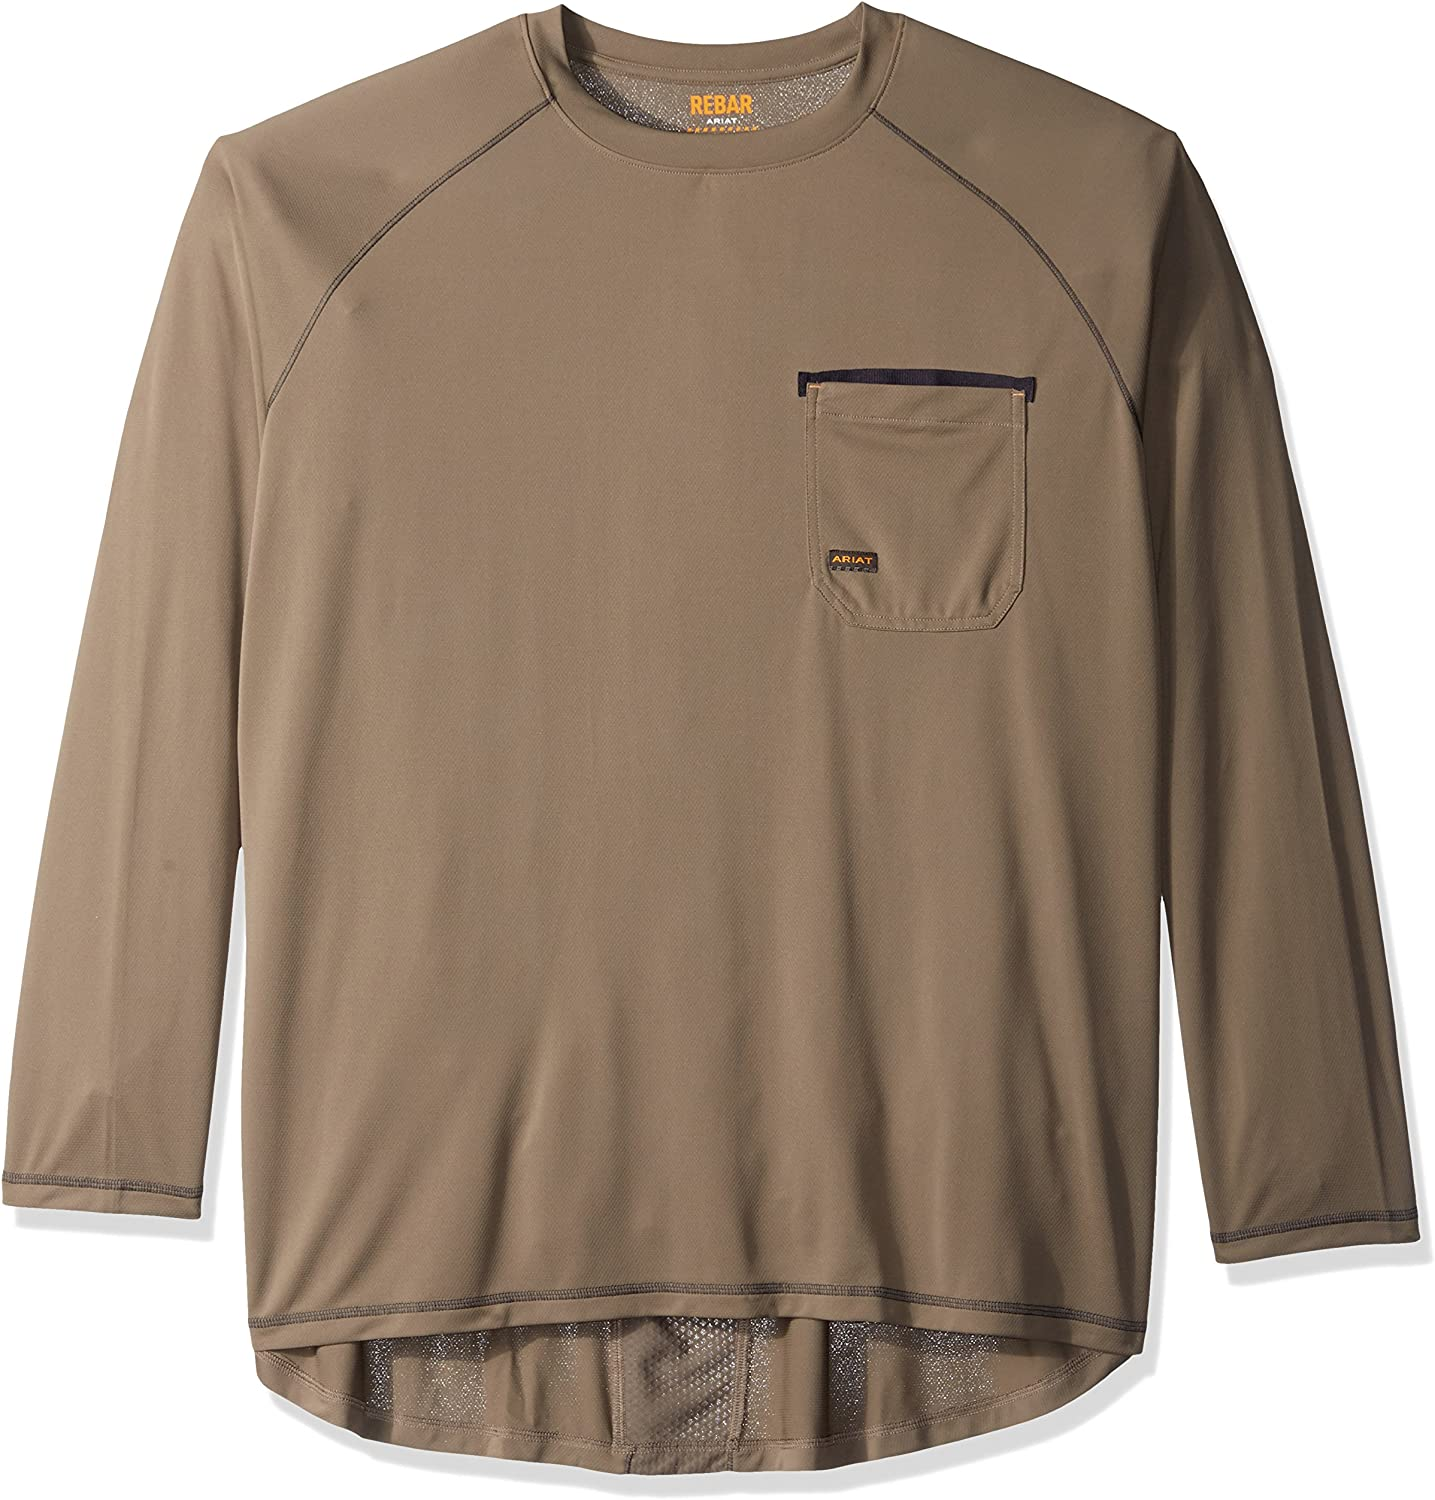 862c2f5b0 Ariat Mens Big and and and Tall Rebar Long Sleeve Sunstopper Crew ...